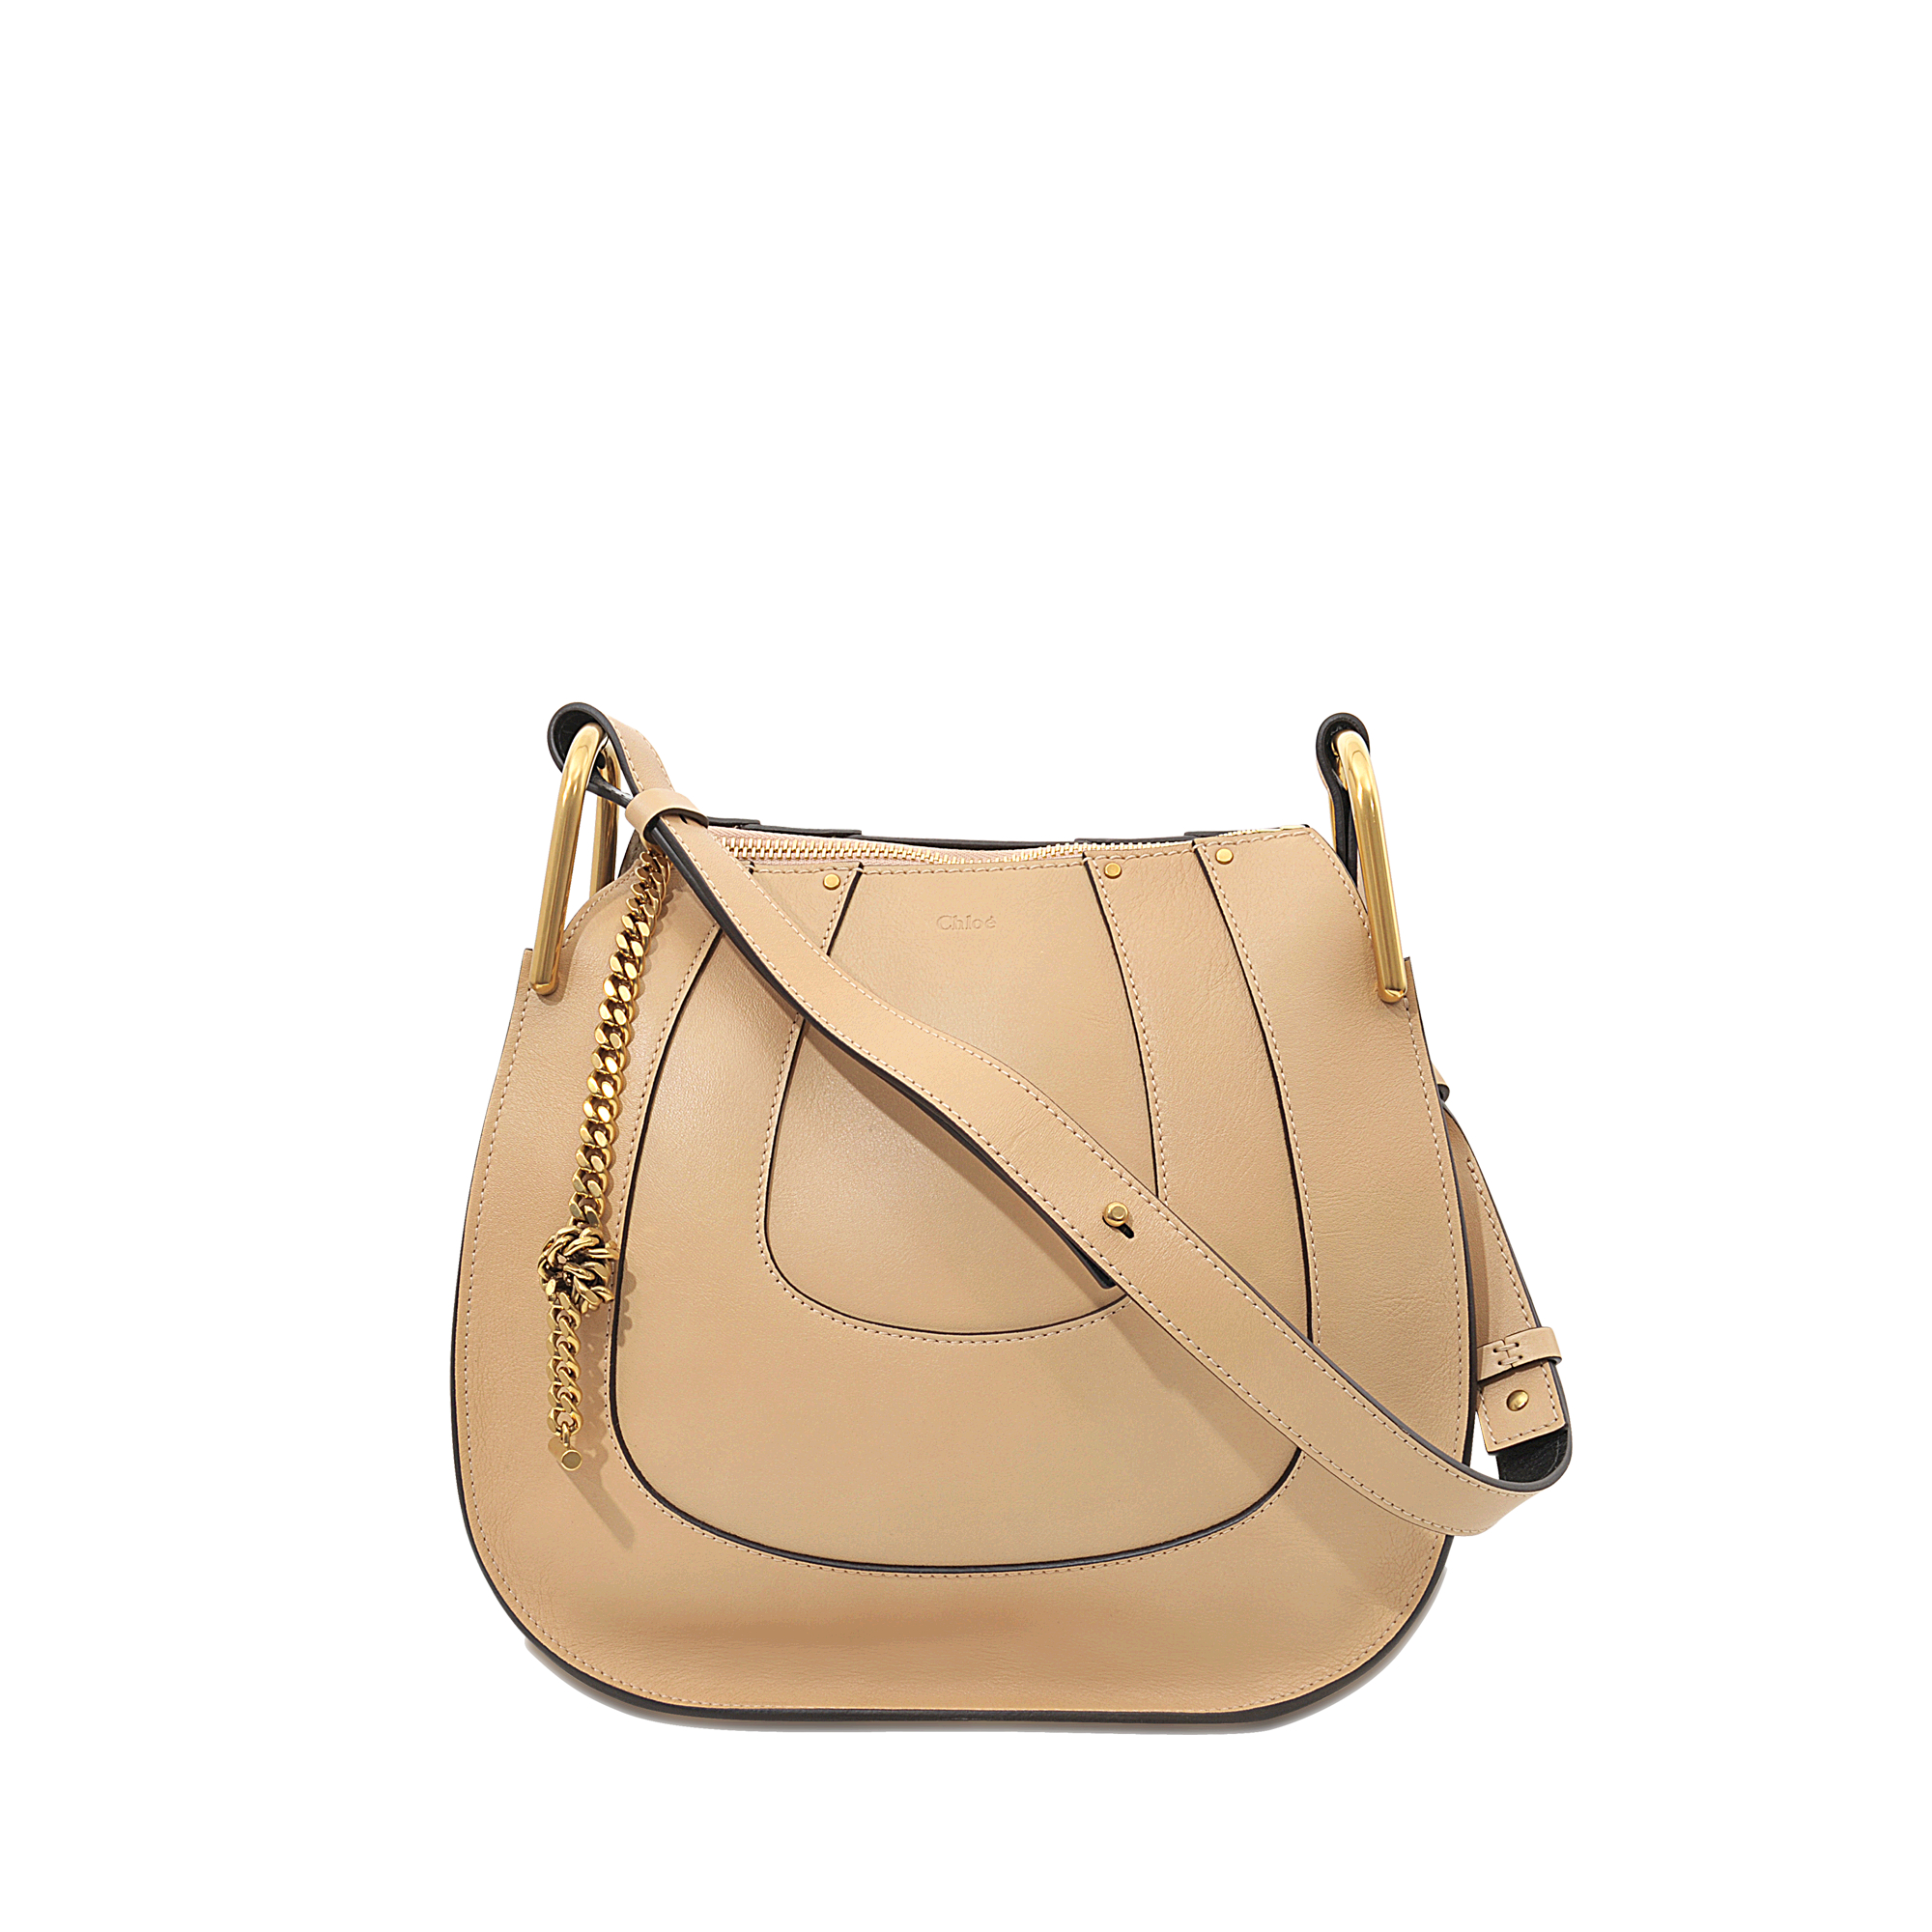 how to tell a fake chloe bag - chloe hayley small hobo, chloe factory outlet